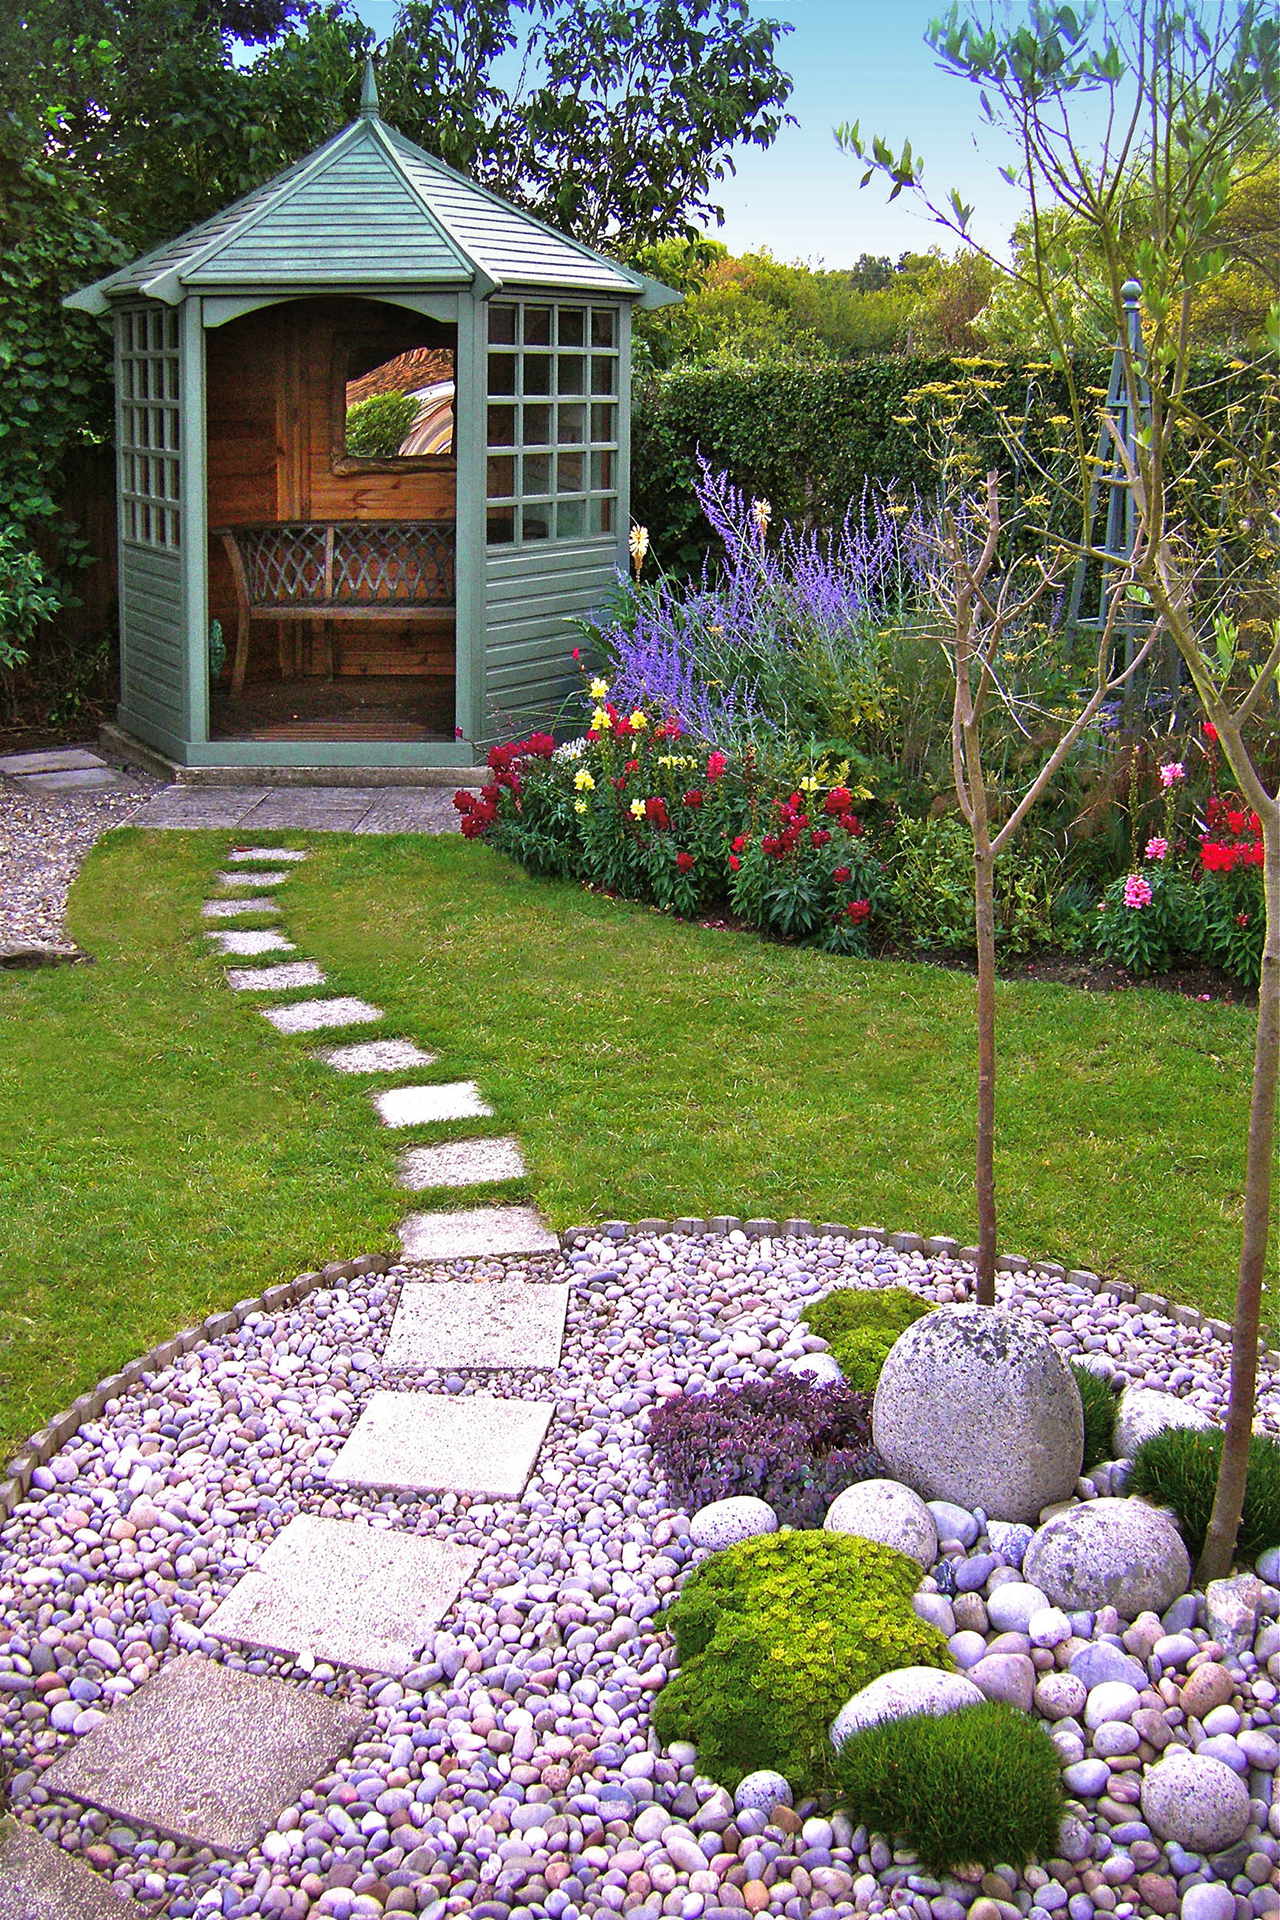 50 Best Backyard Landscaping Ideas And Designs In 2019 in Where To Start Landscaping Backyard